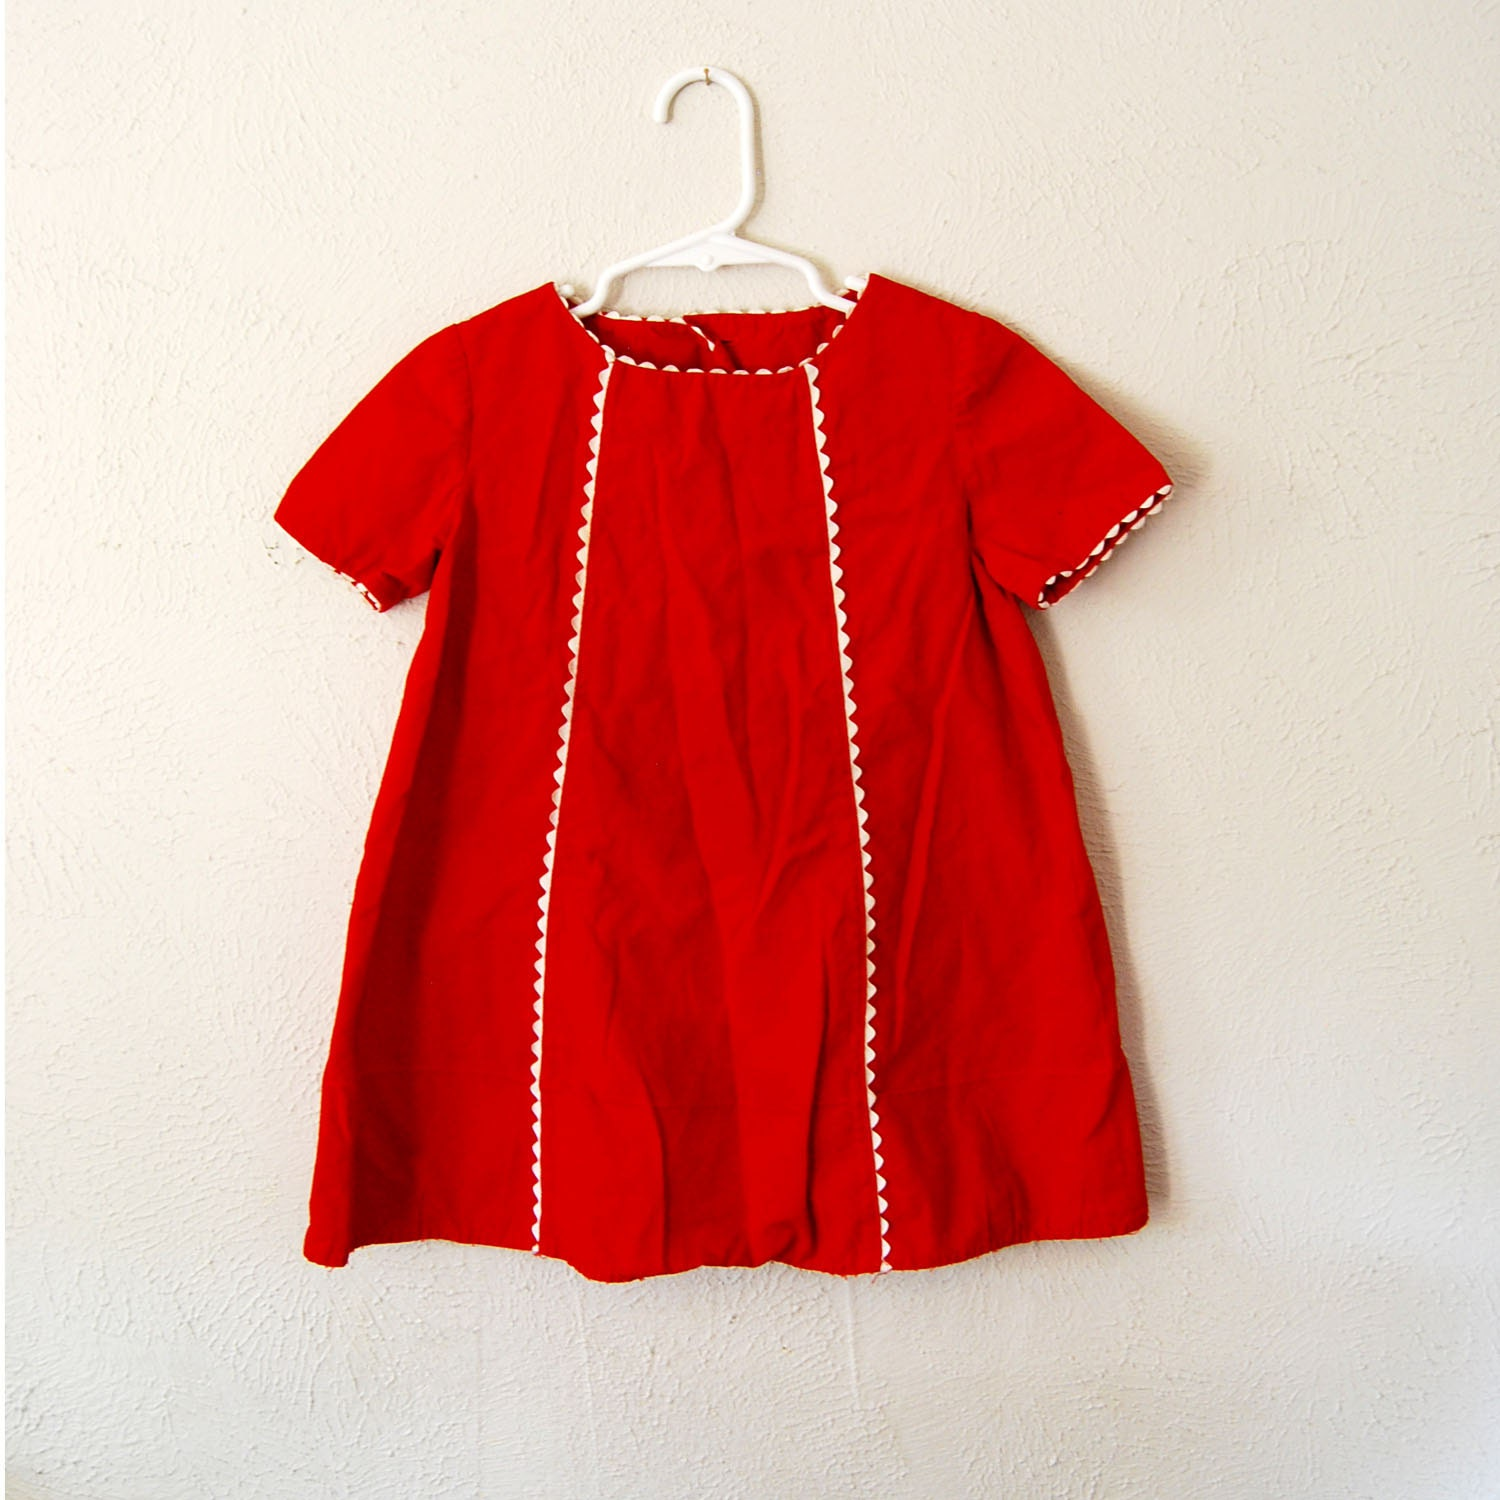 vintage mod handmade red dress with white trim - olliesvintage